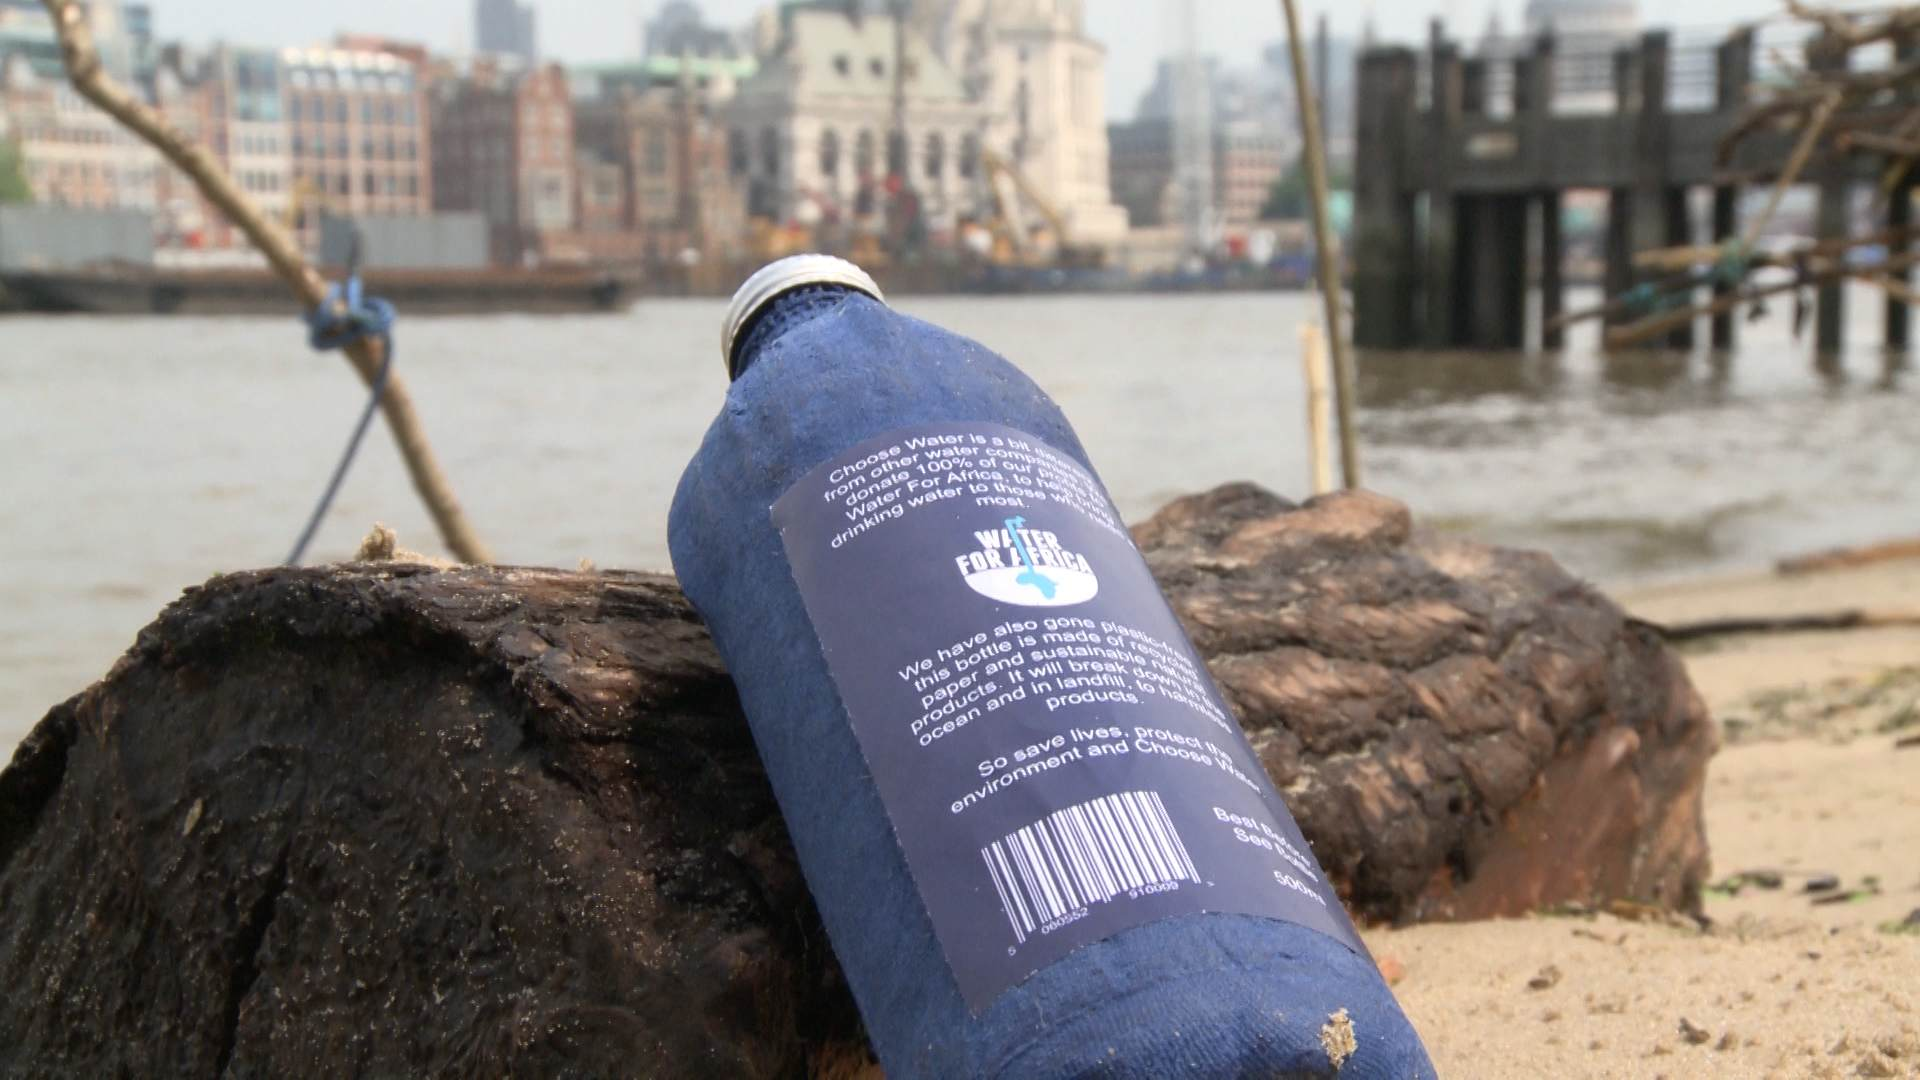 cd8ae5baa3 A plastic-free water bottle developed by the British entrepreneur James  Longcroft. /FSN Photo